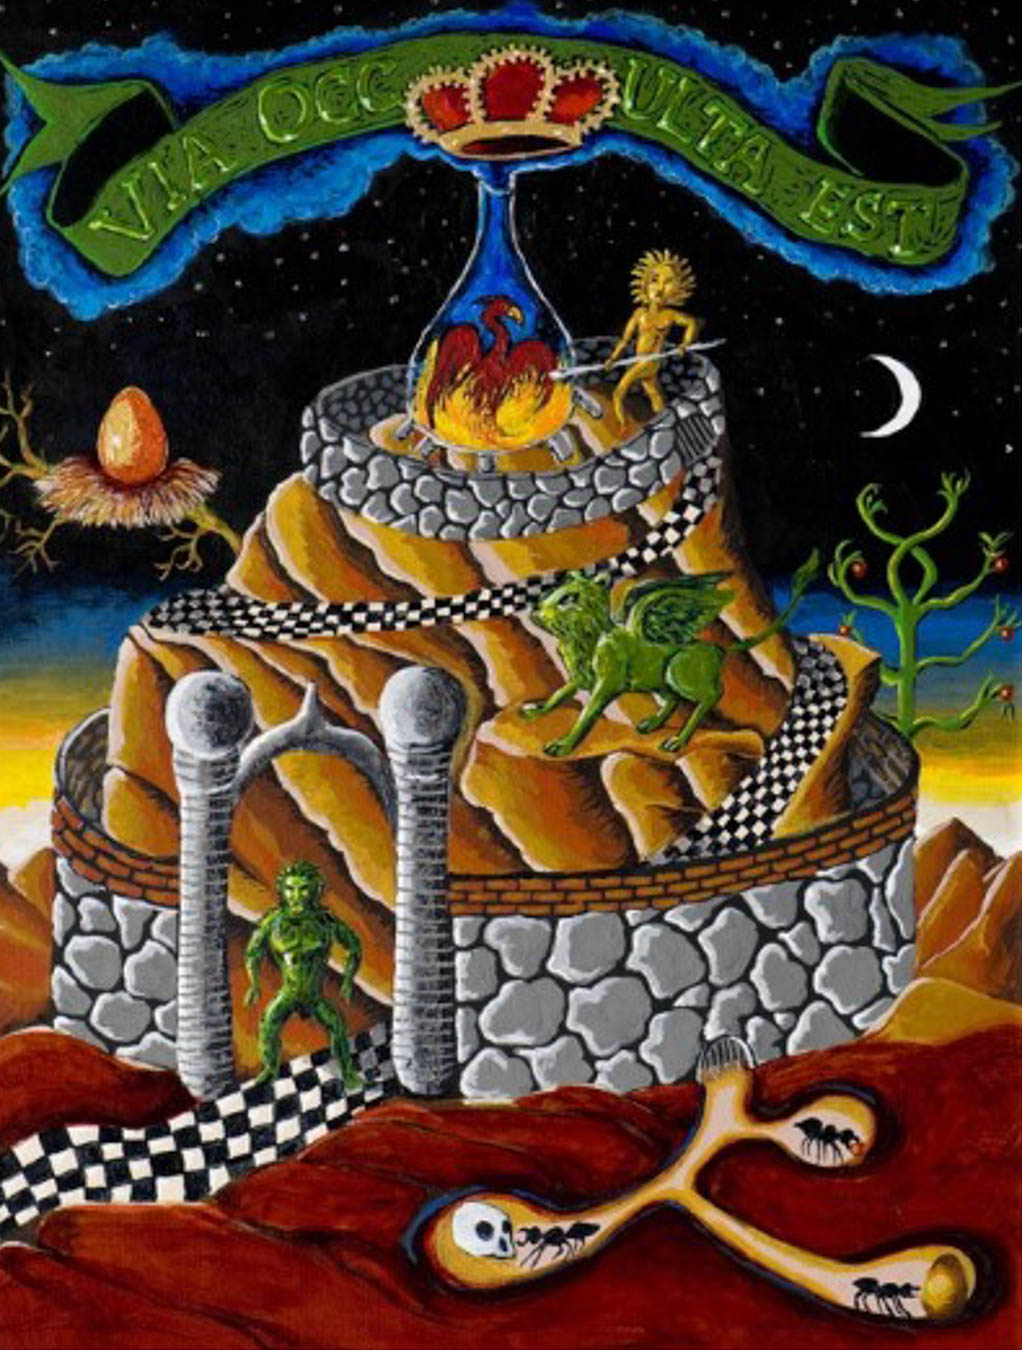 Surreal image of a mountain occupied by mythological creatures. Mountain is surrounded by a stone wall.